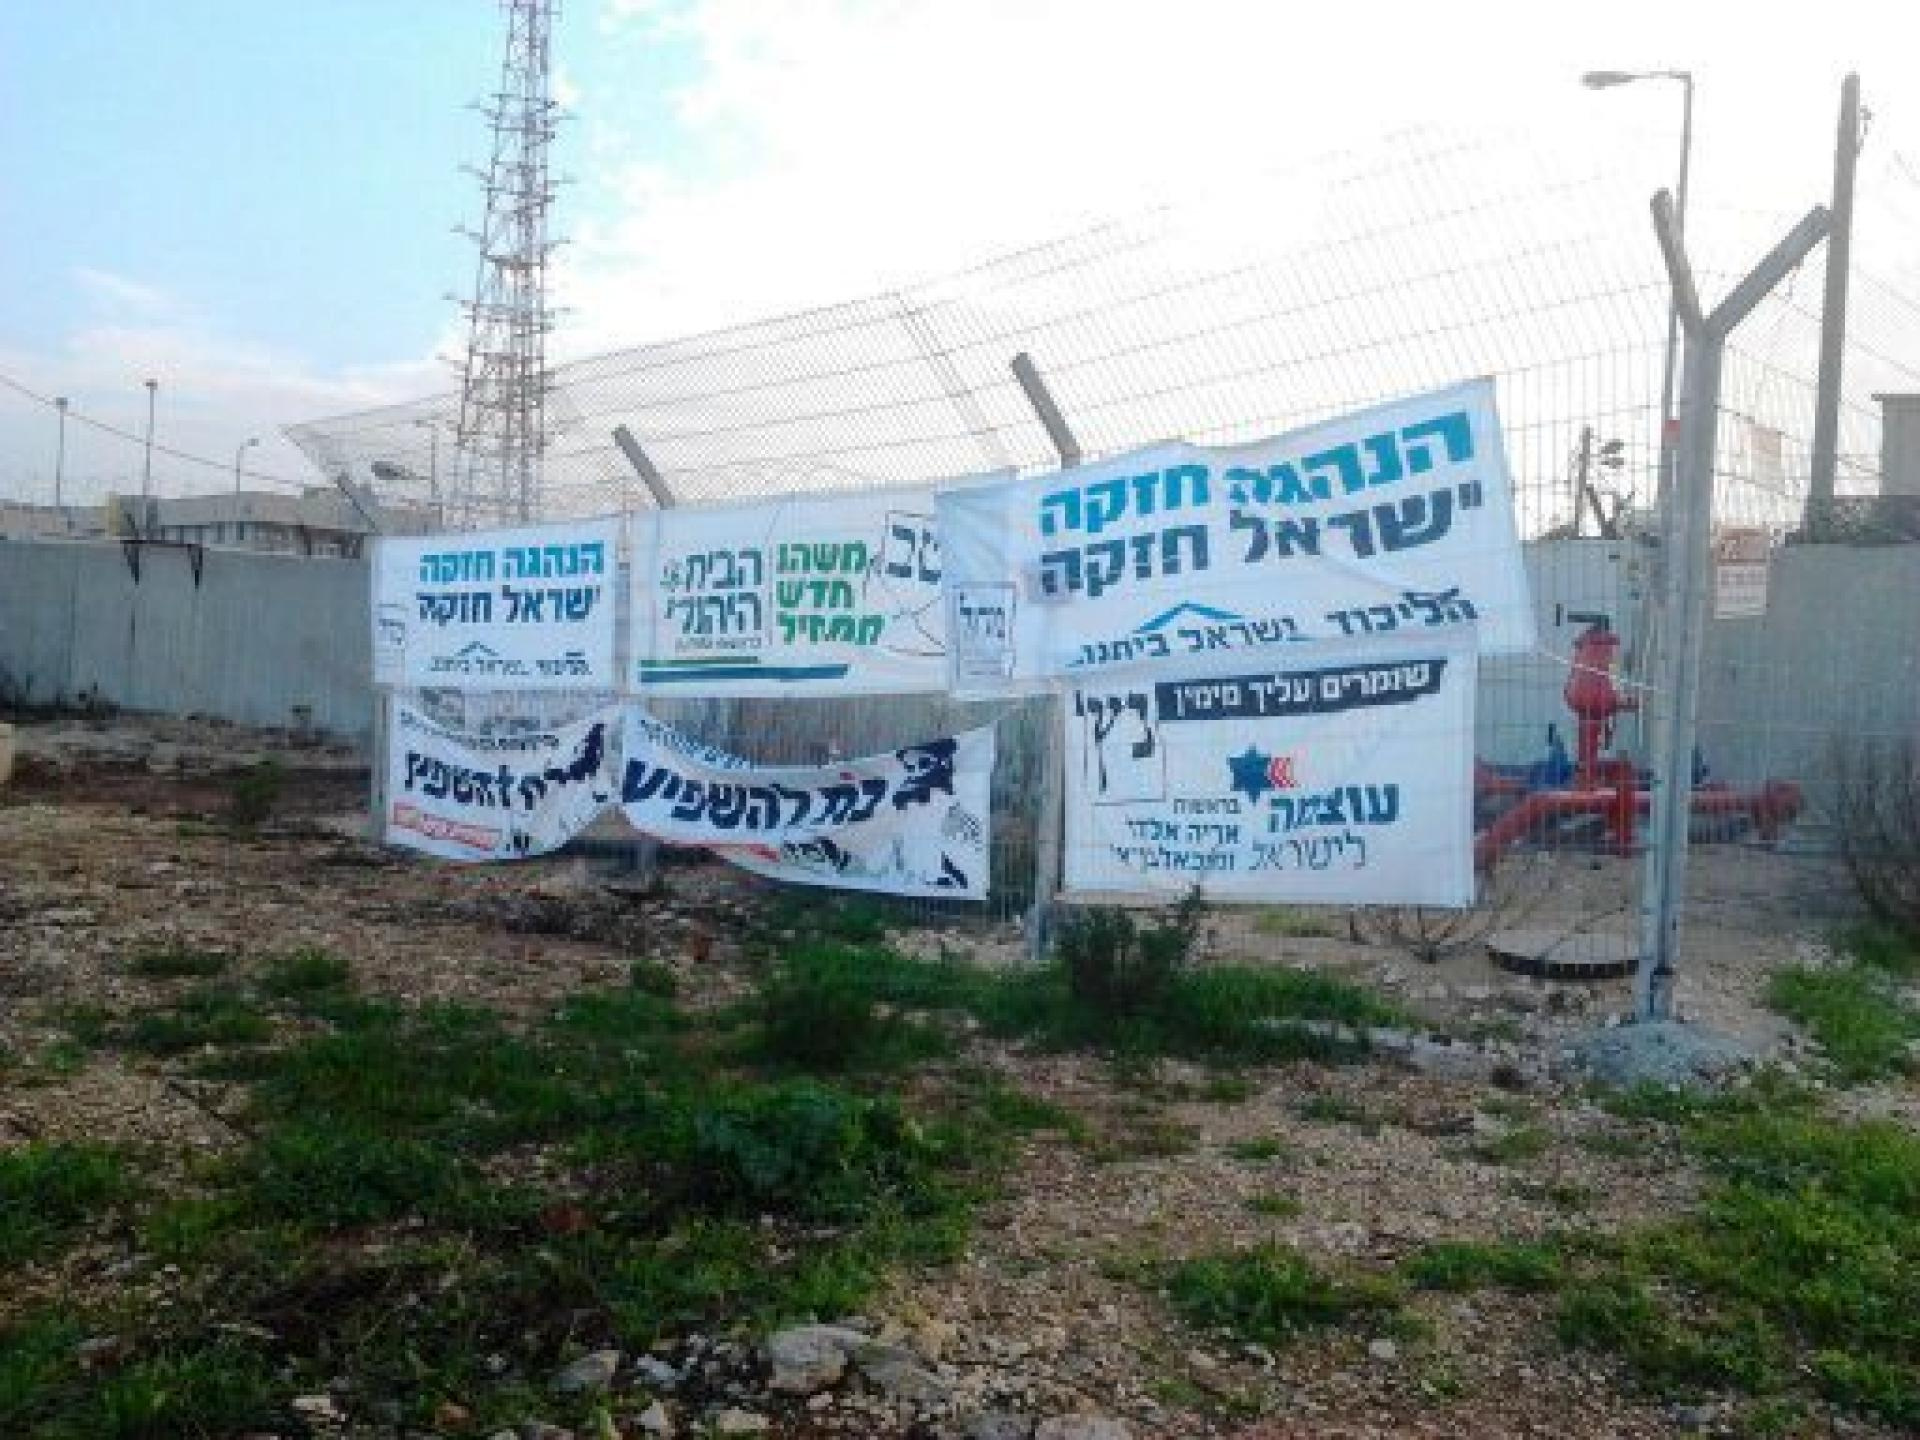 Tura/Shaked checkpoint 25.02.13